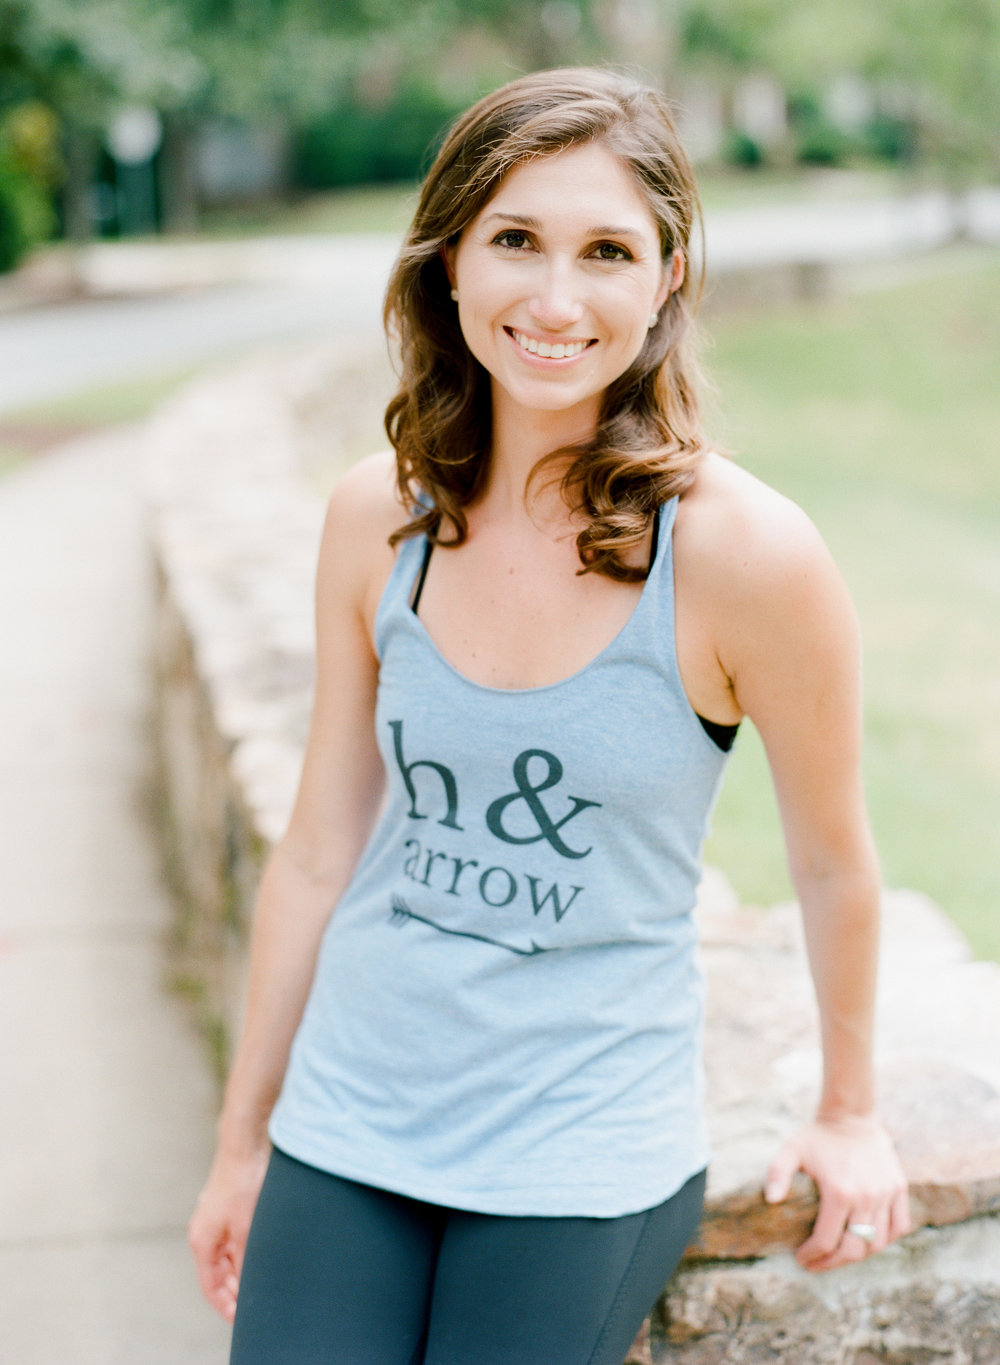 Hannah Fleishman, Owner of H & Arrow Fitness | North Carolina